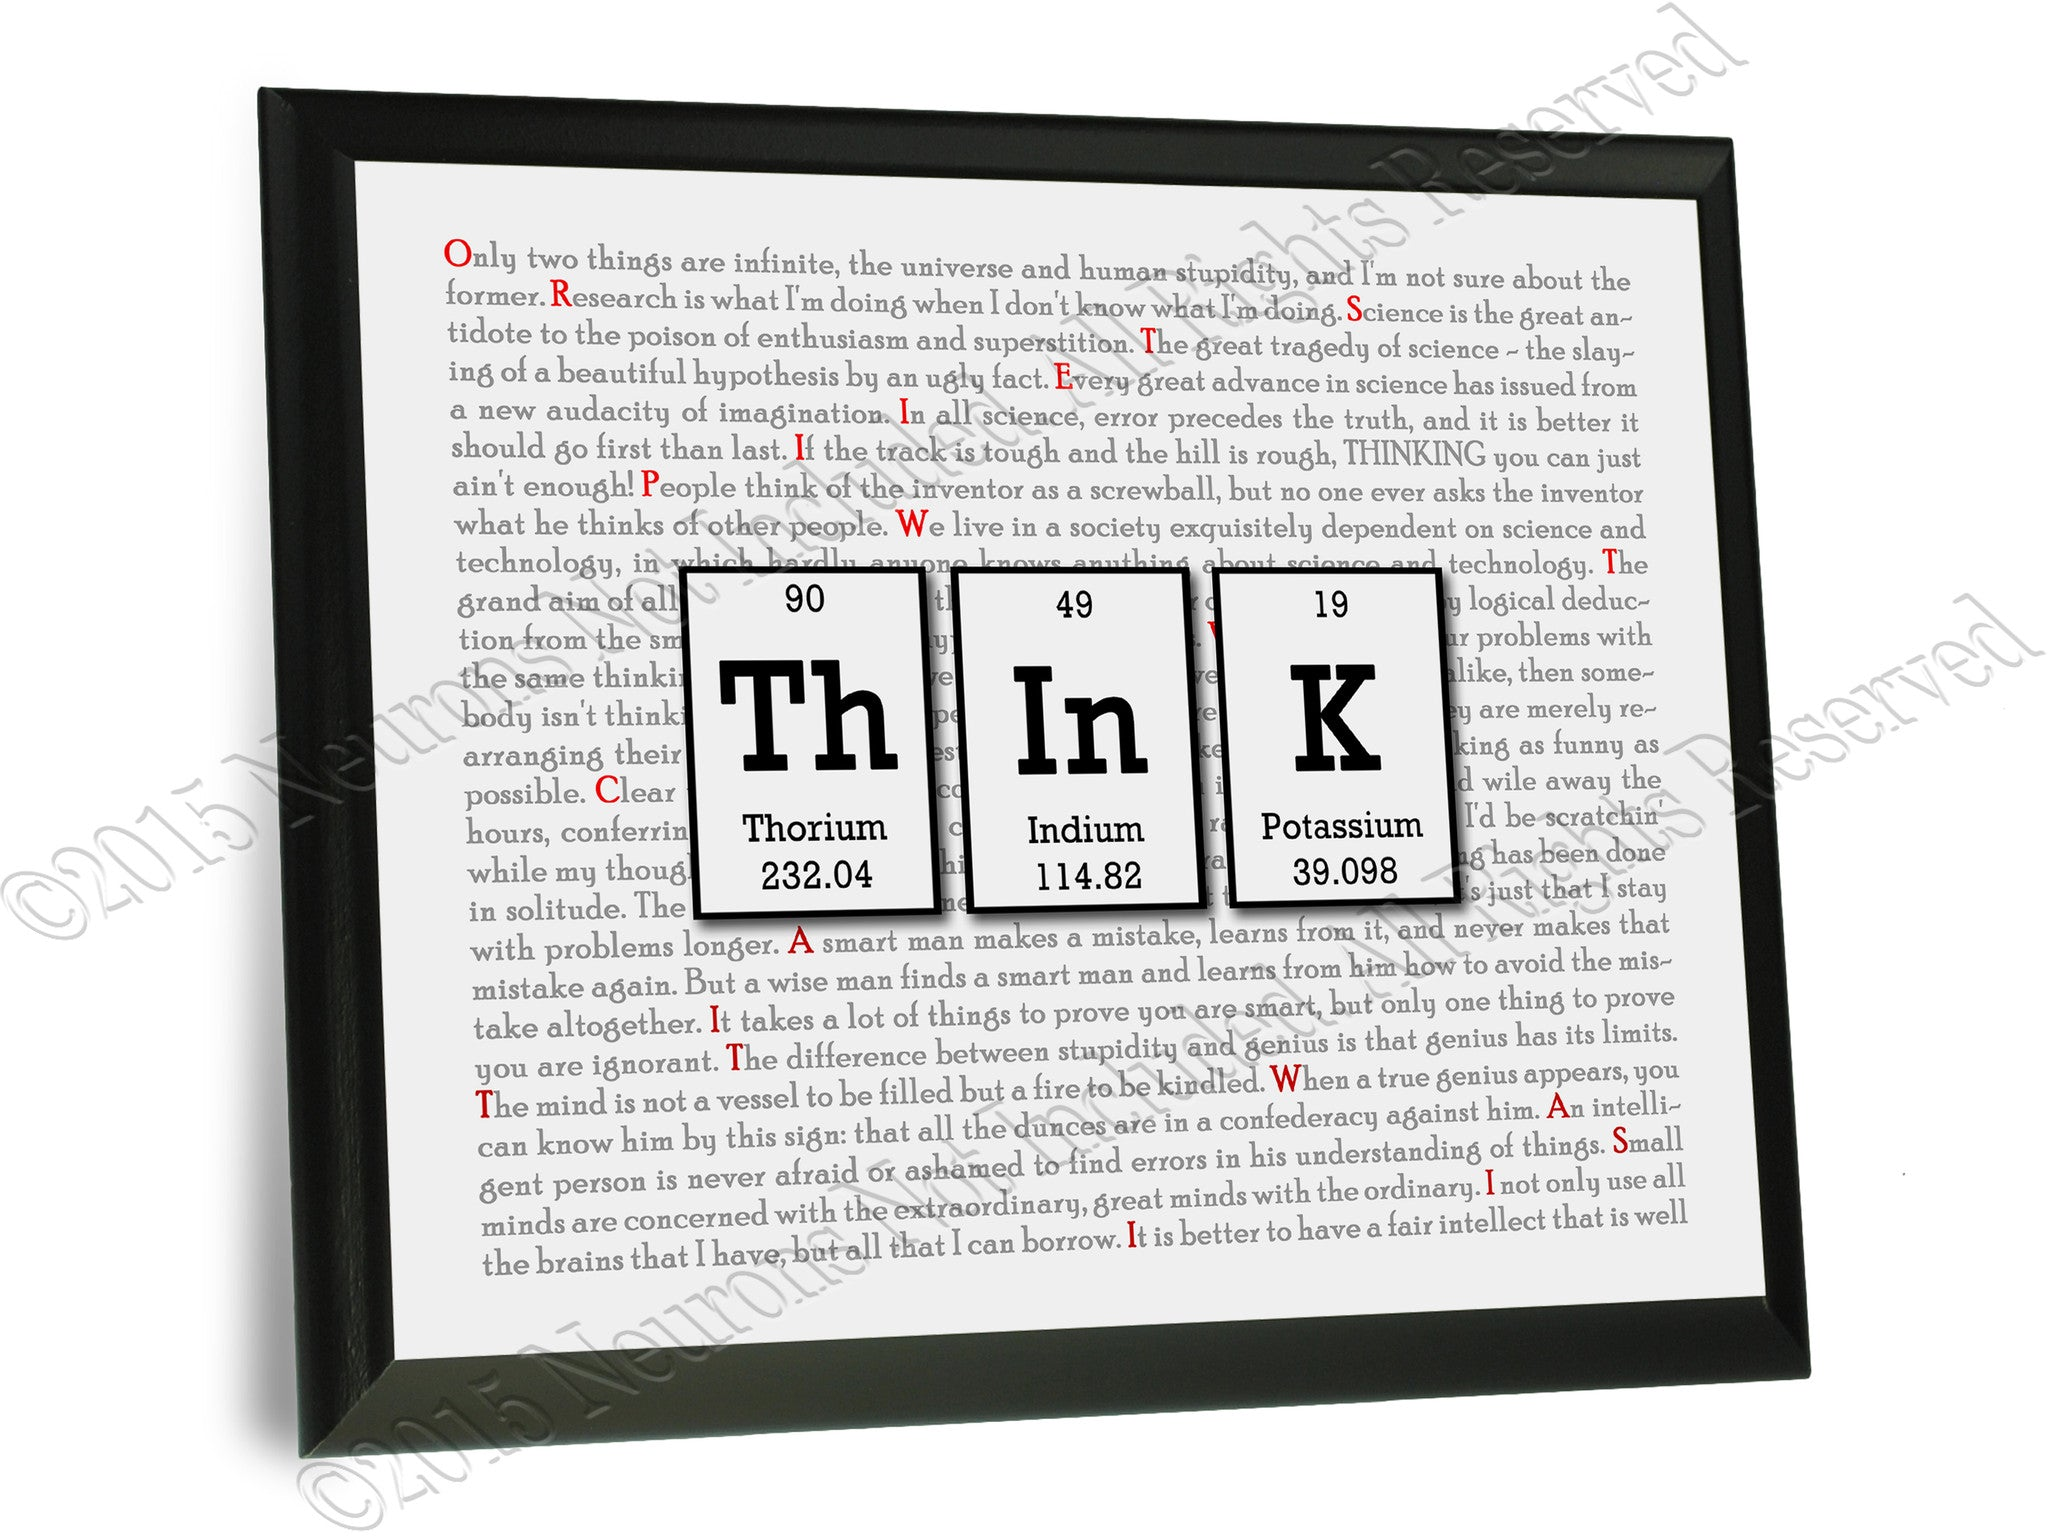 Think periodic table of elements wall plaque 9x12 neurons not think periodic table of elements typography wall plaque urtaz Image collections